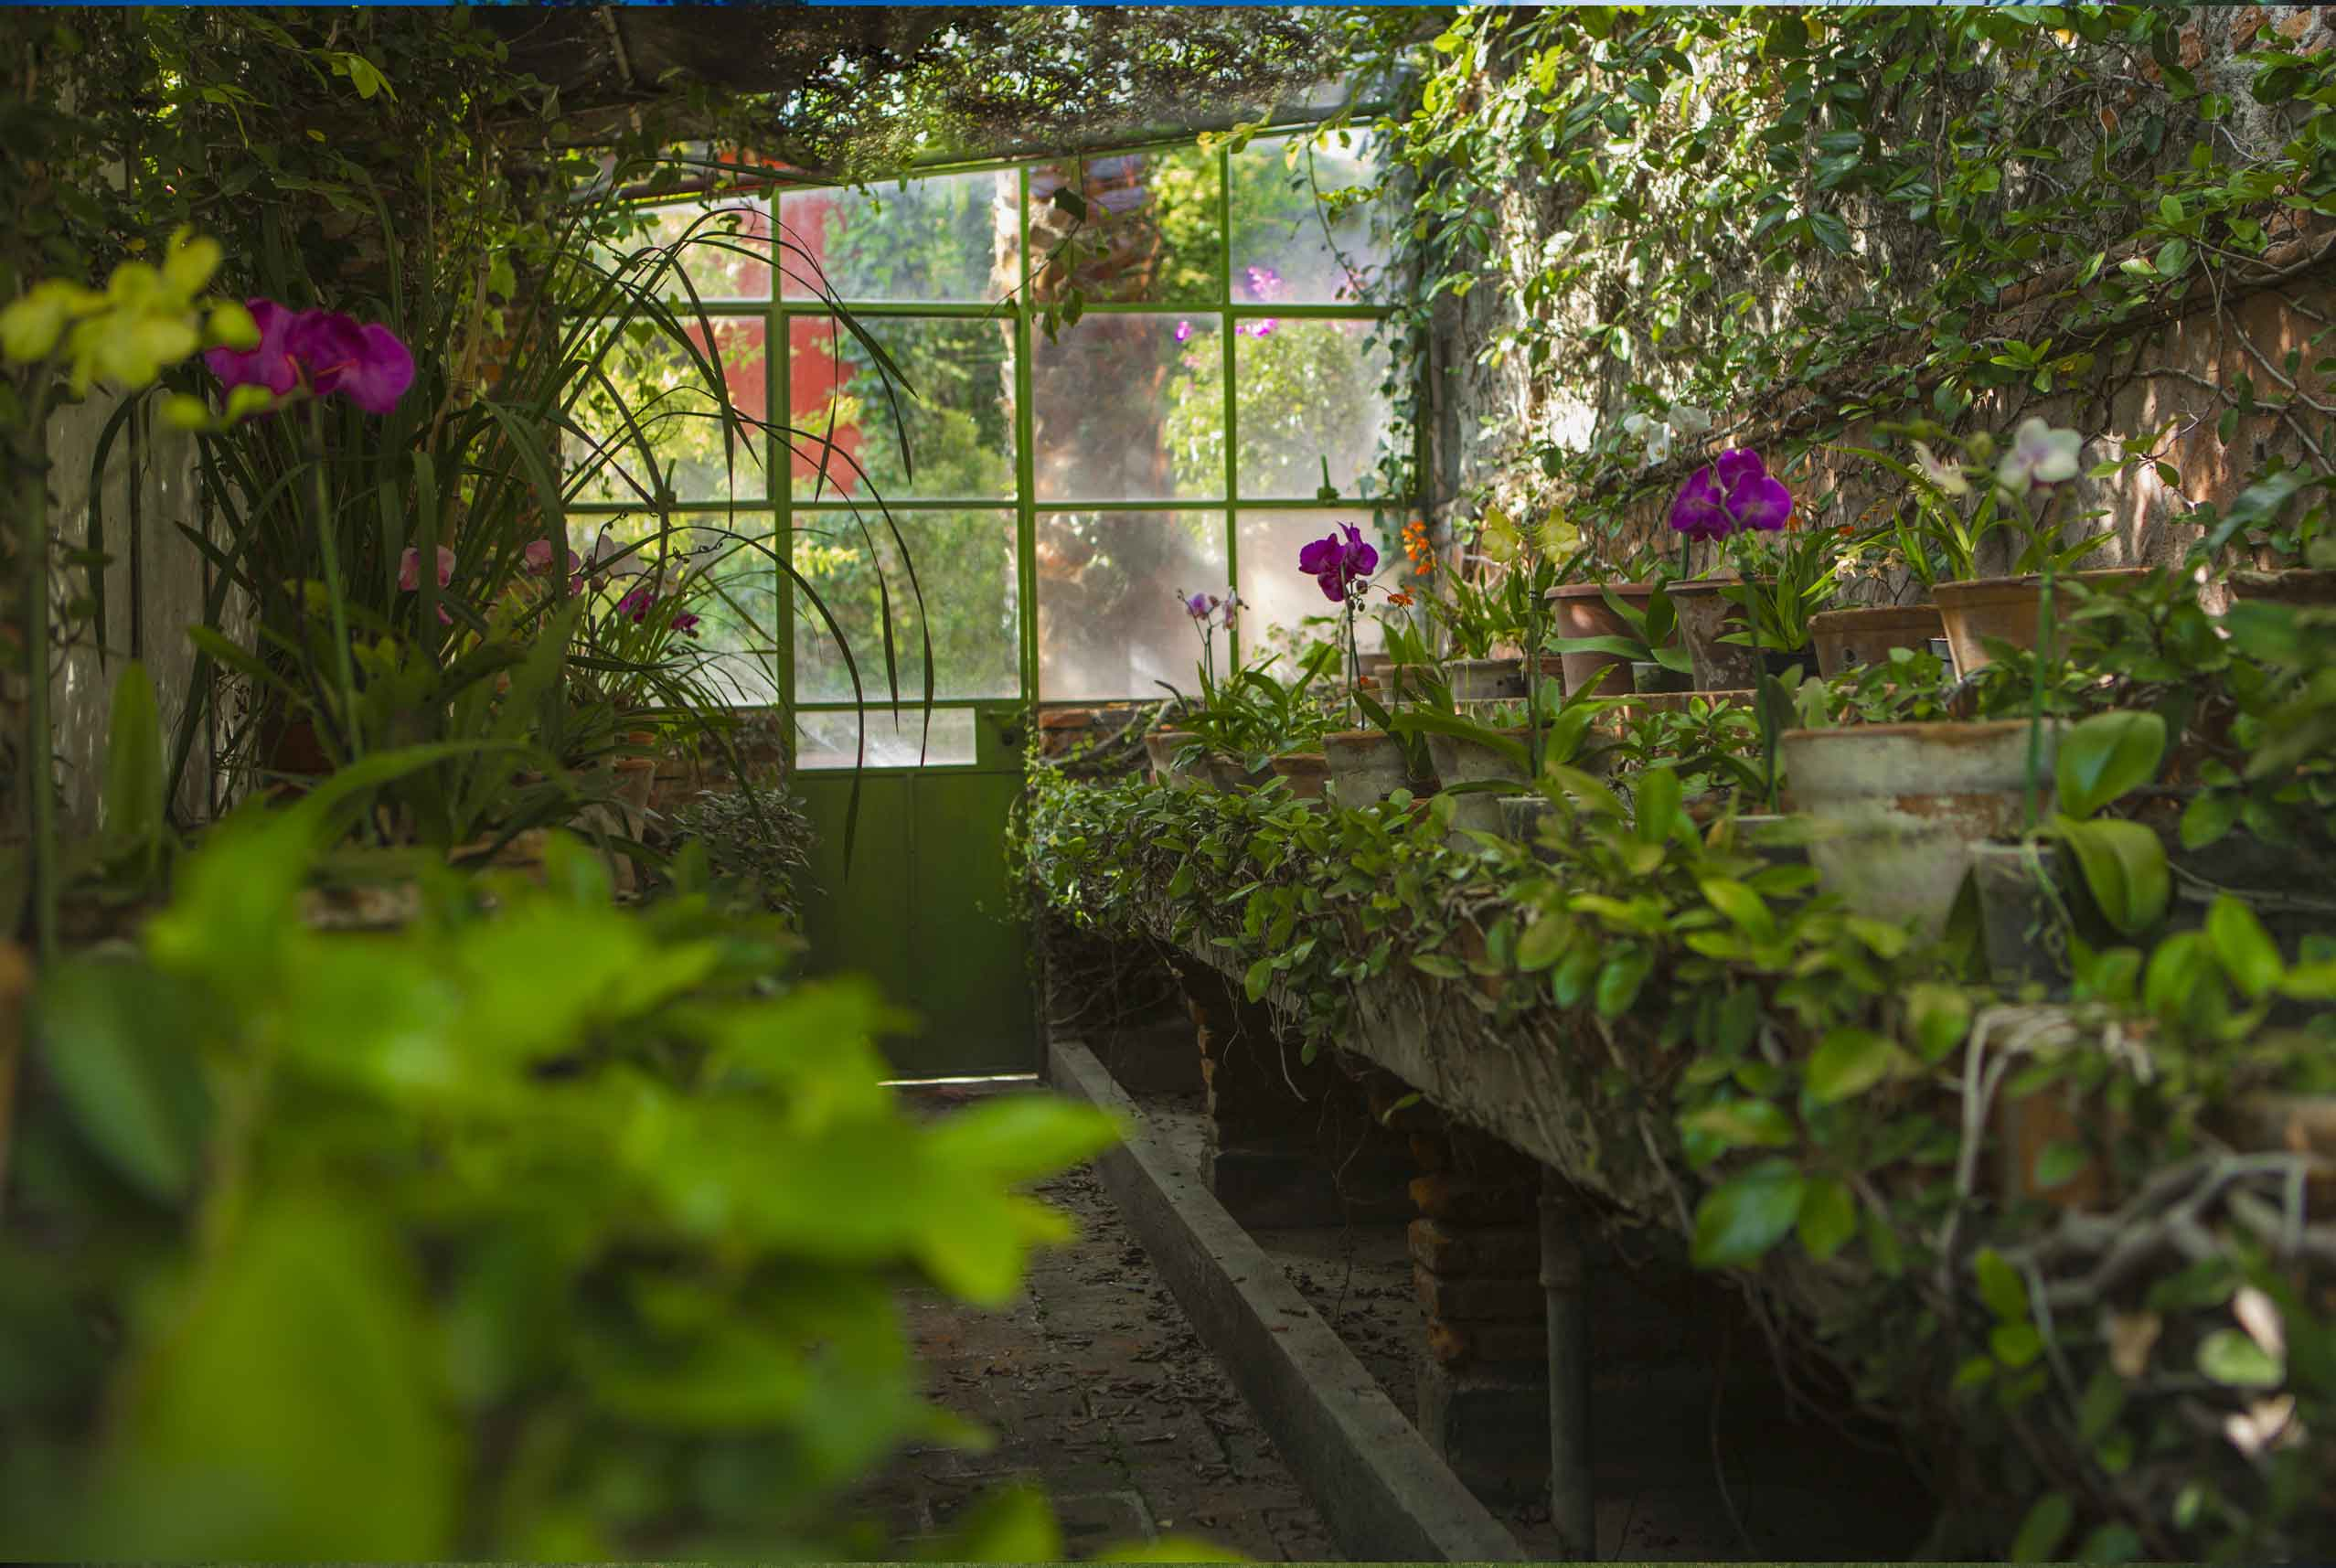 A lush greenhouse is a special botanical haven for plant lovers in this San Miguel setting.